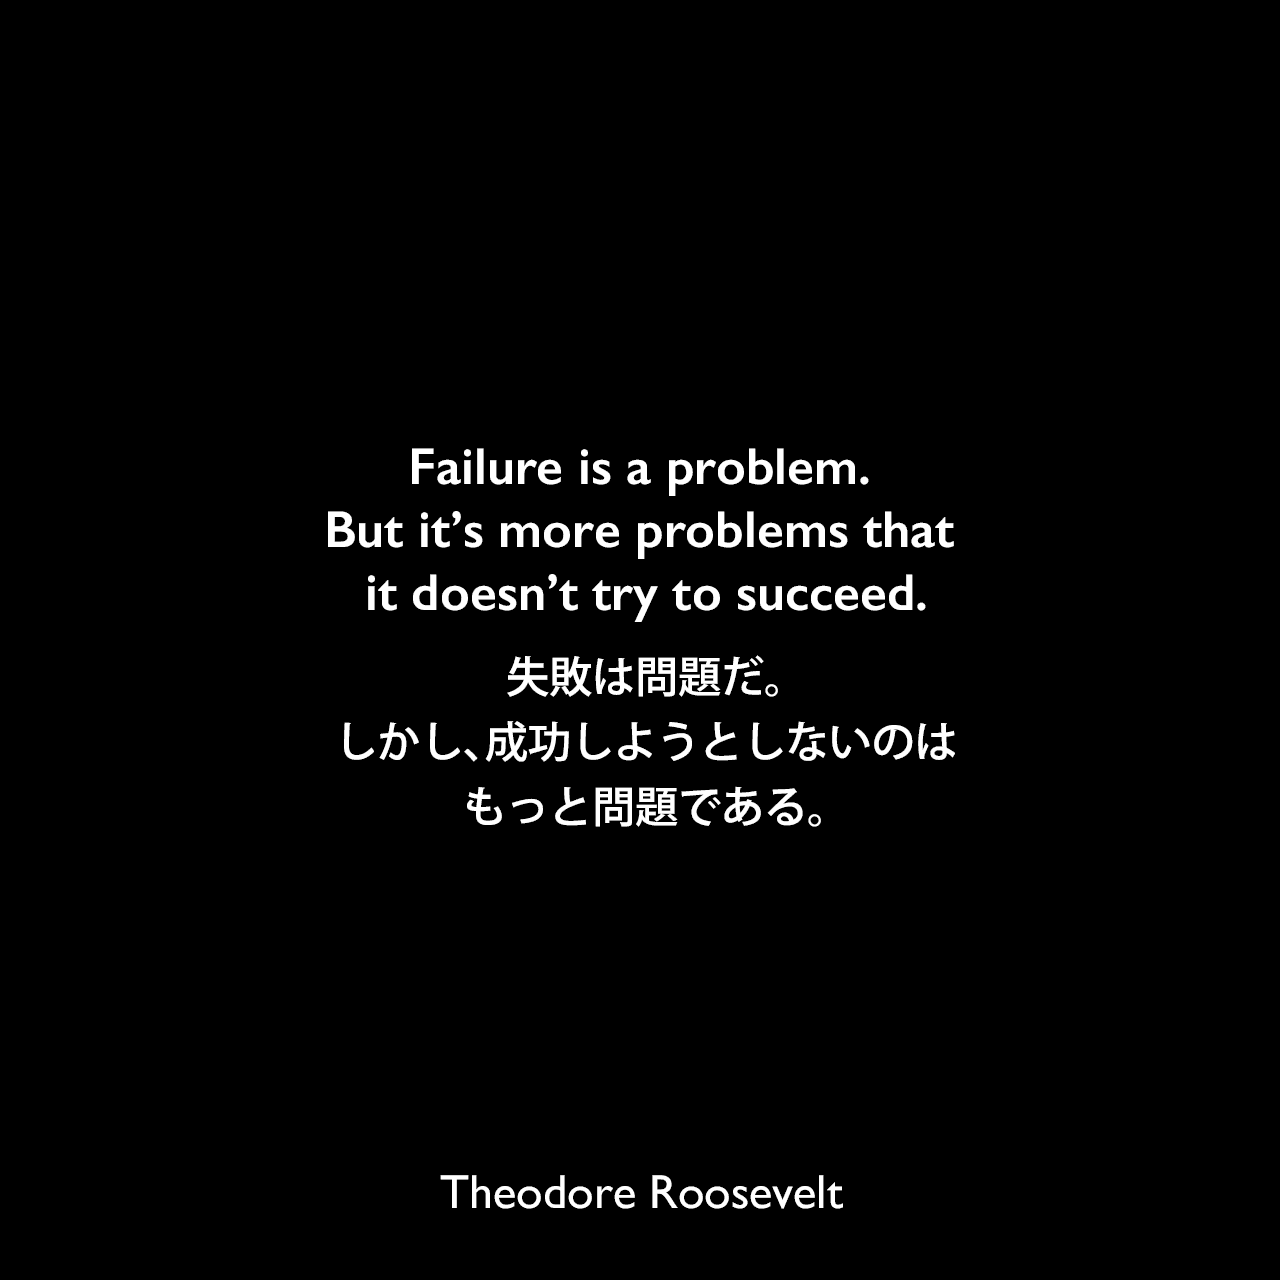 Failure is a problem. But it's more problems that it doesn't try to succeed.失敗は問題だ。しかし、成功しようとしないのは、もっと問題である。